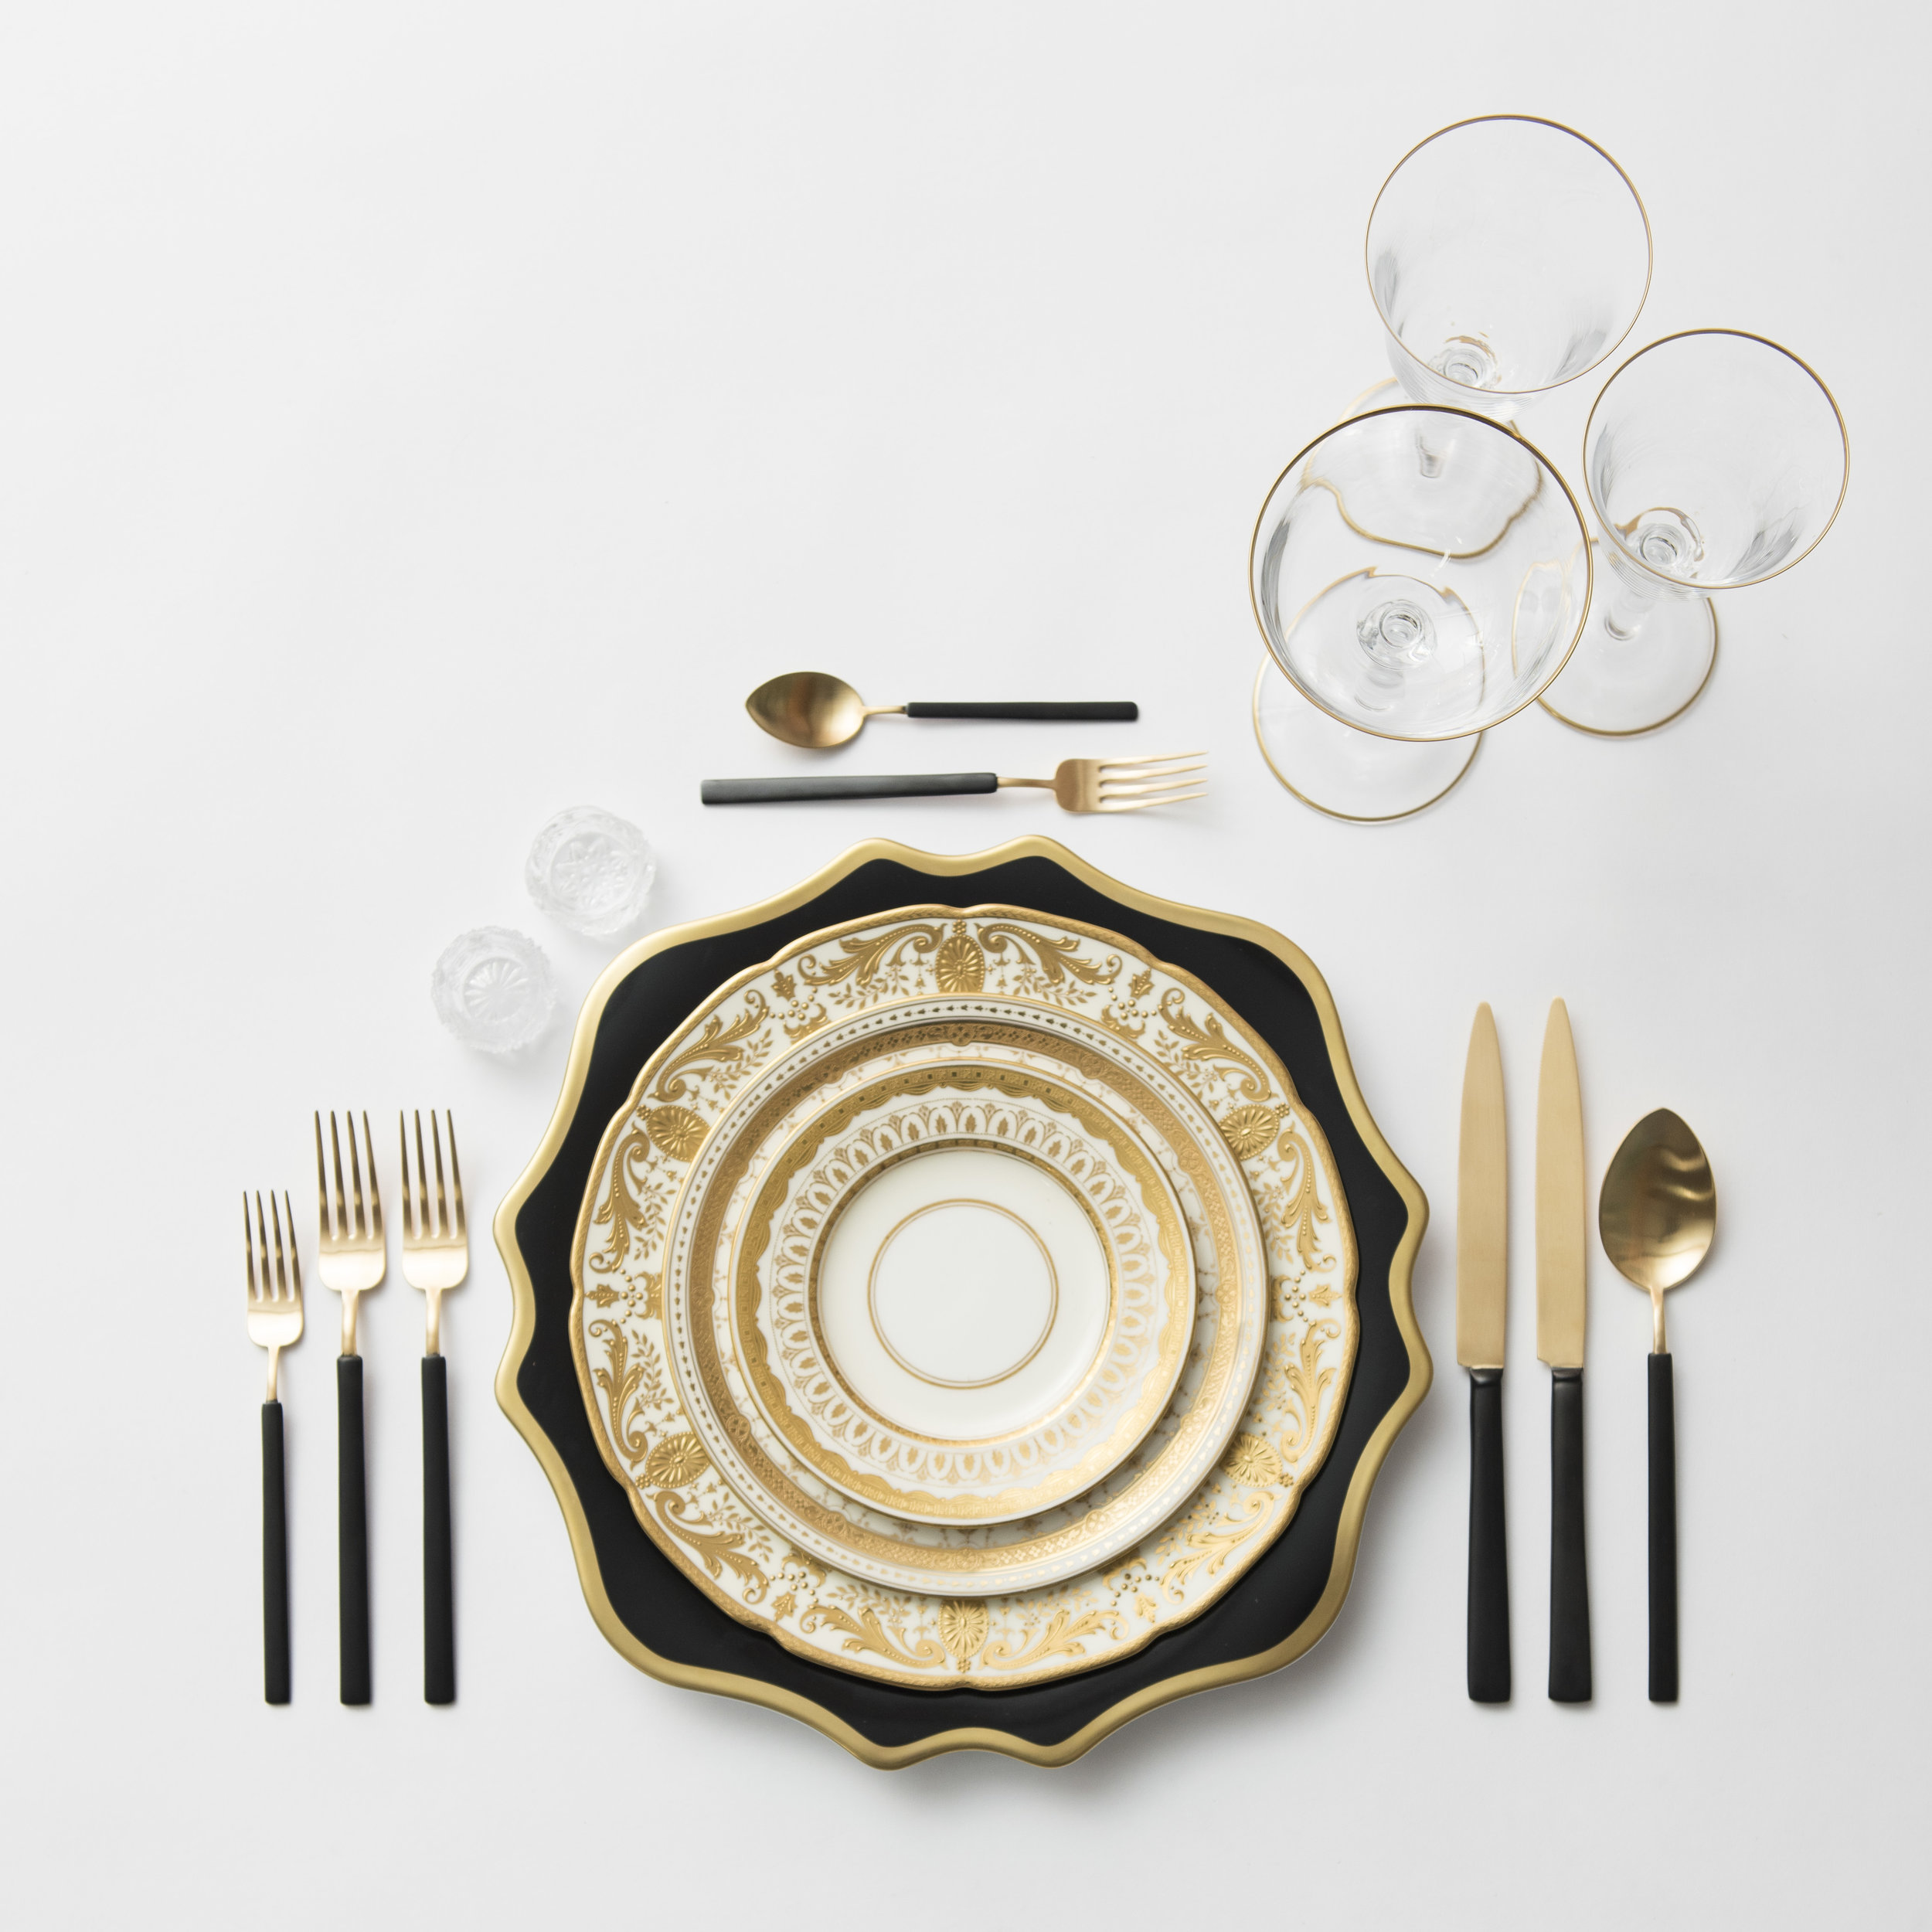 RENT: Anna Weatherley Chargers in Black/Gold + Crown Gold Collection Vintage China + Axel Flatware in Matte 24k Gold/Black + Chloe 24k Gold Rimmed Stemware + Antique Crystal Salt Cellars  SHOP: Chloe 24k Gold Rimmed Stemware